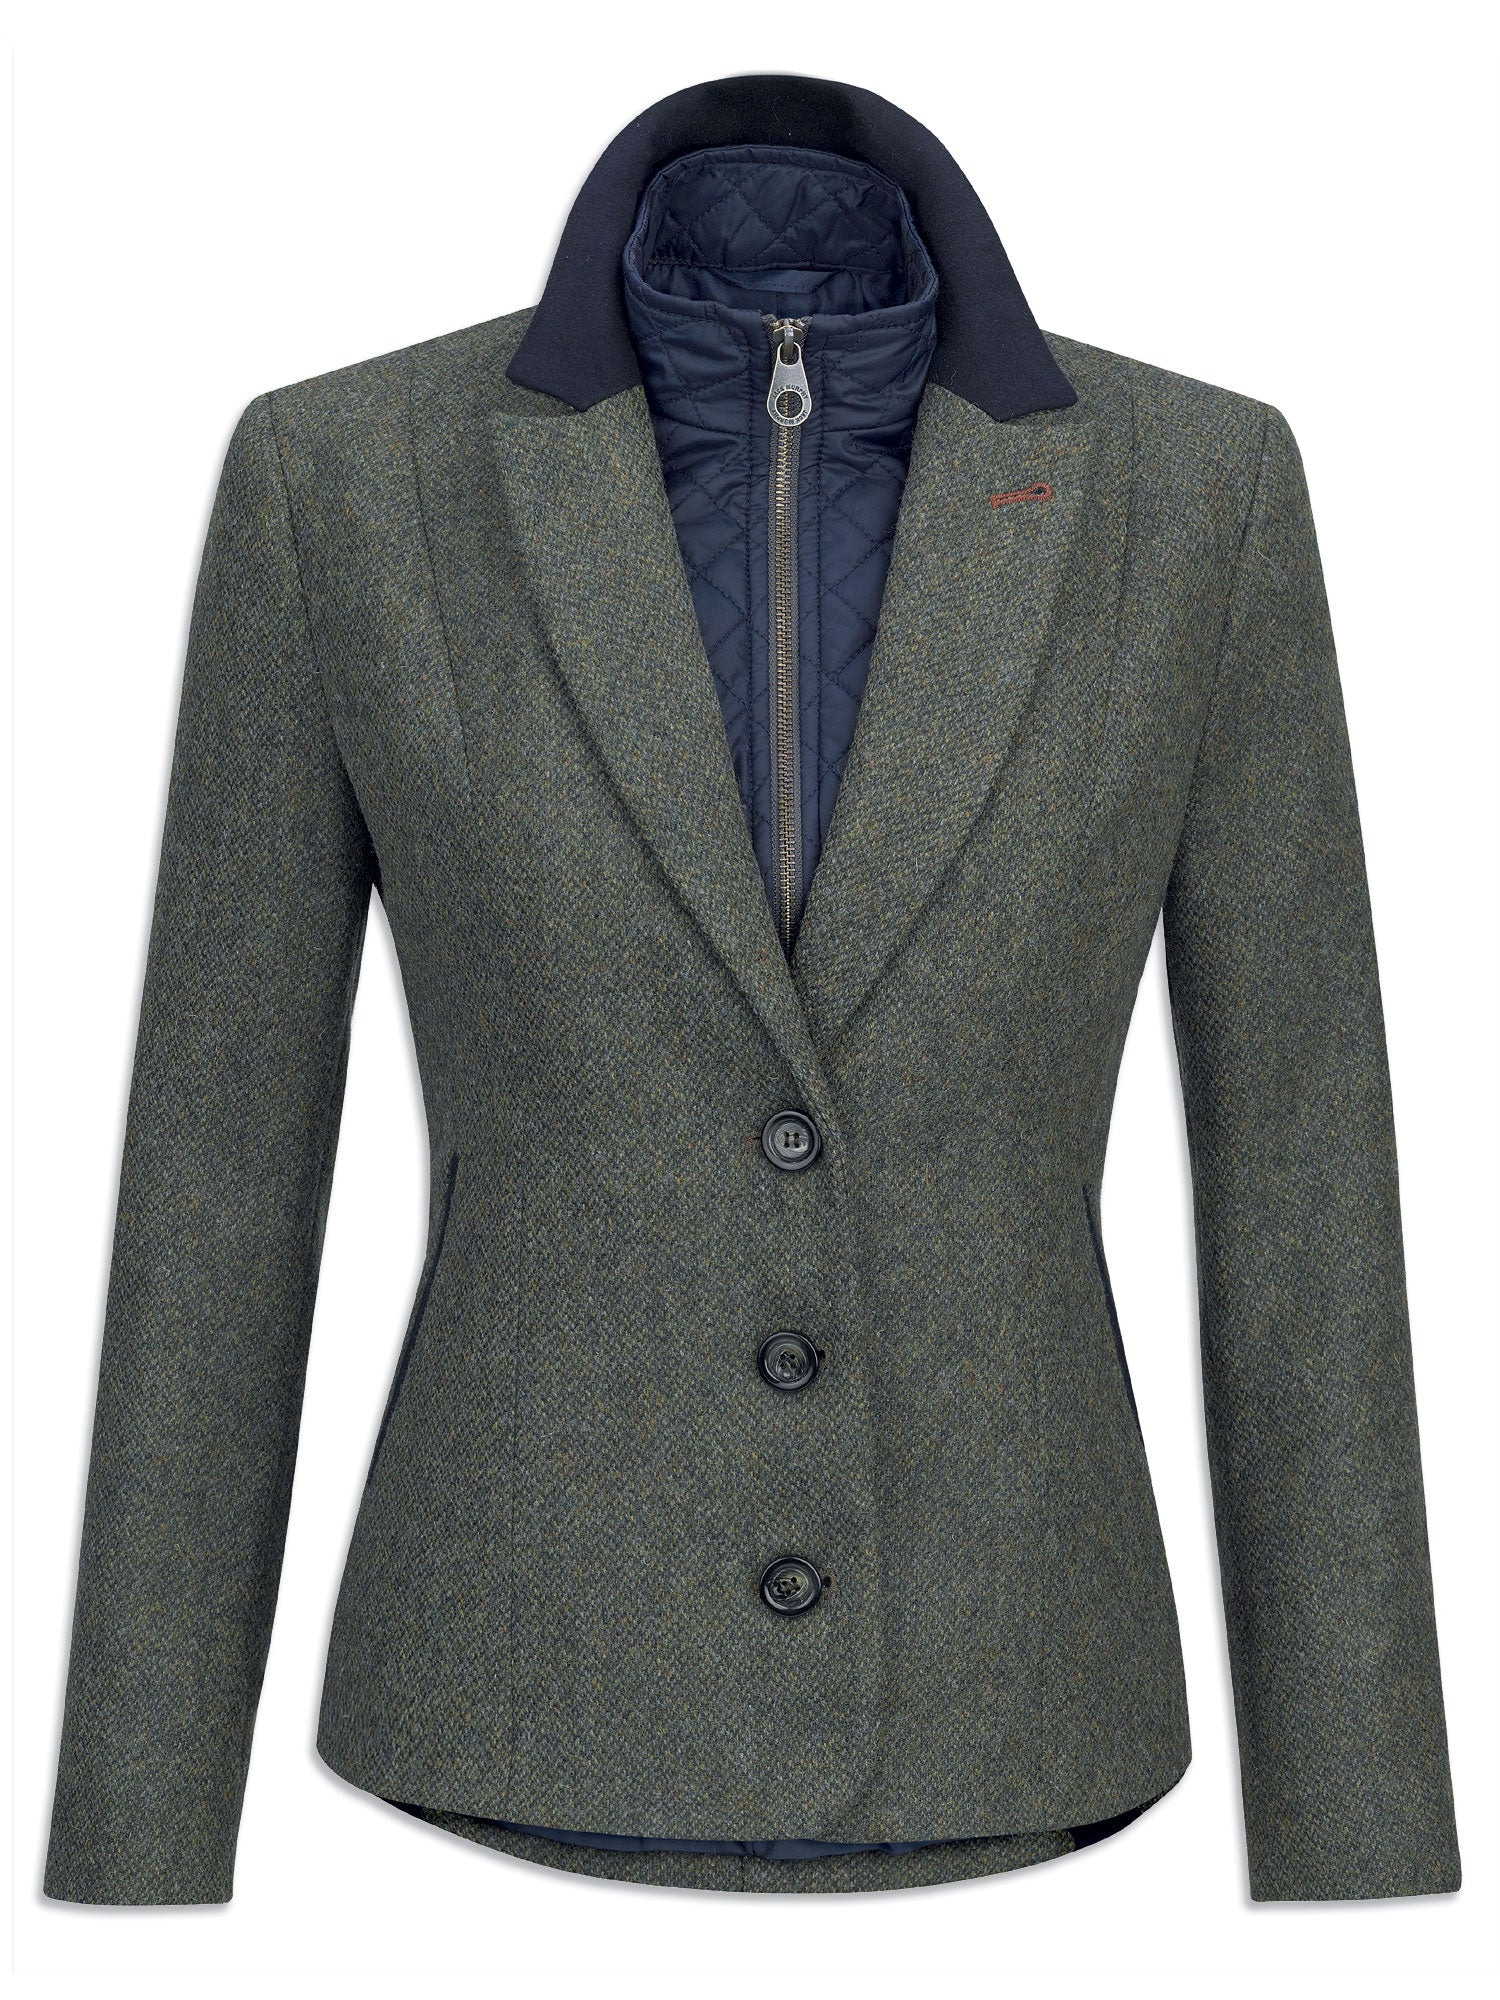 Expertly Tailored Mens and Ladies Tweed Clothing Harris Tweed Jacket - British style - Harris Tweed & Yorkshire Tweed - Tweed Jacket - Tweed Coat A Modern Take on Classic British Style. Manufacturers of Heritage Tweed Clothing Established Yorkshire, Great Britain.